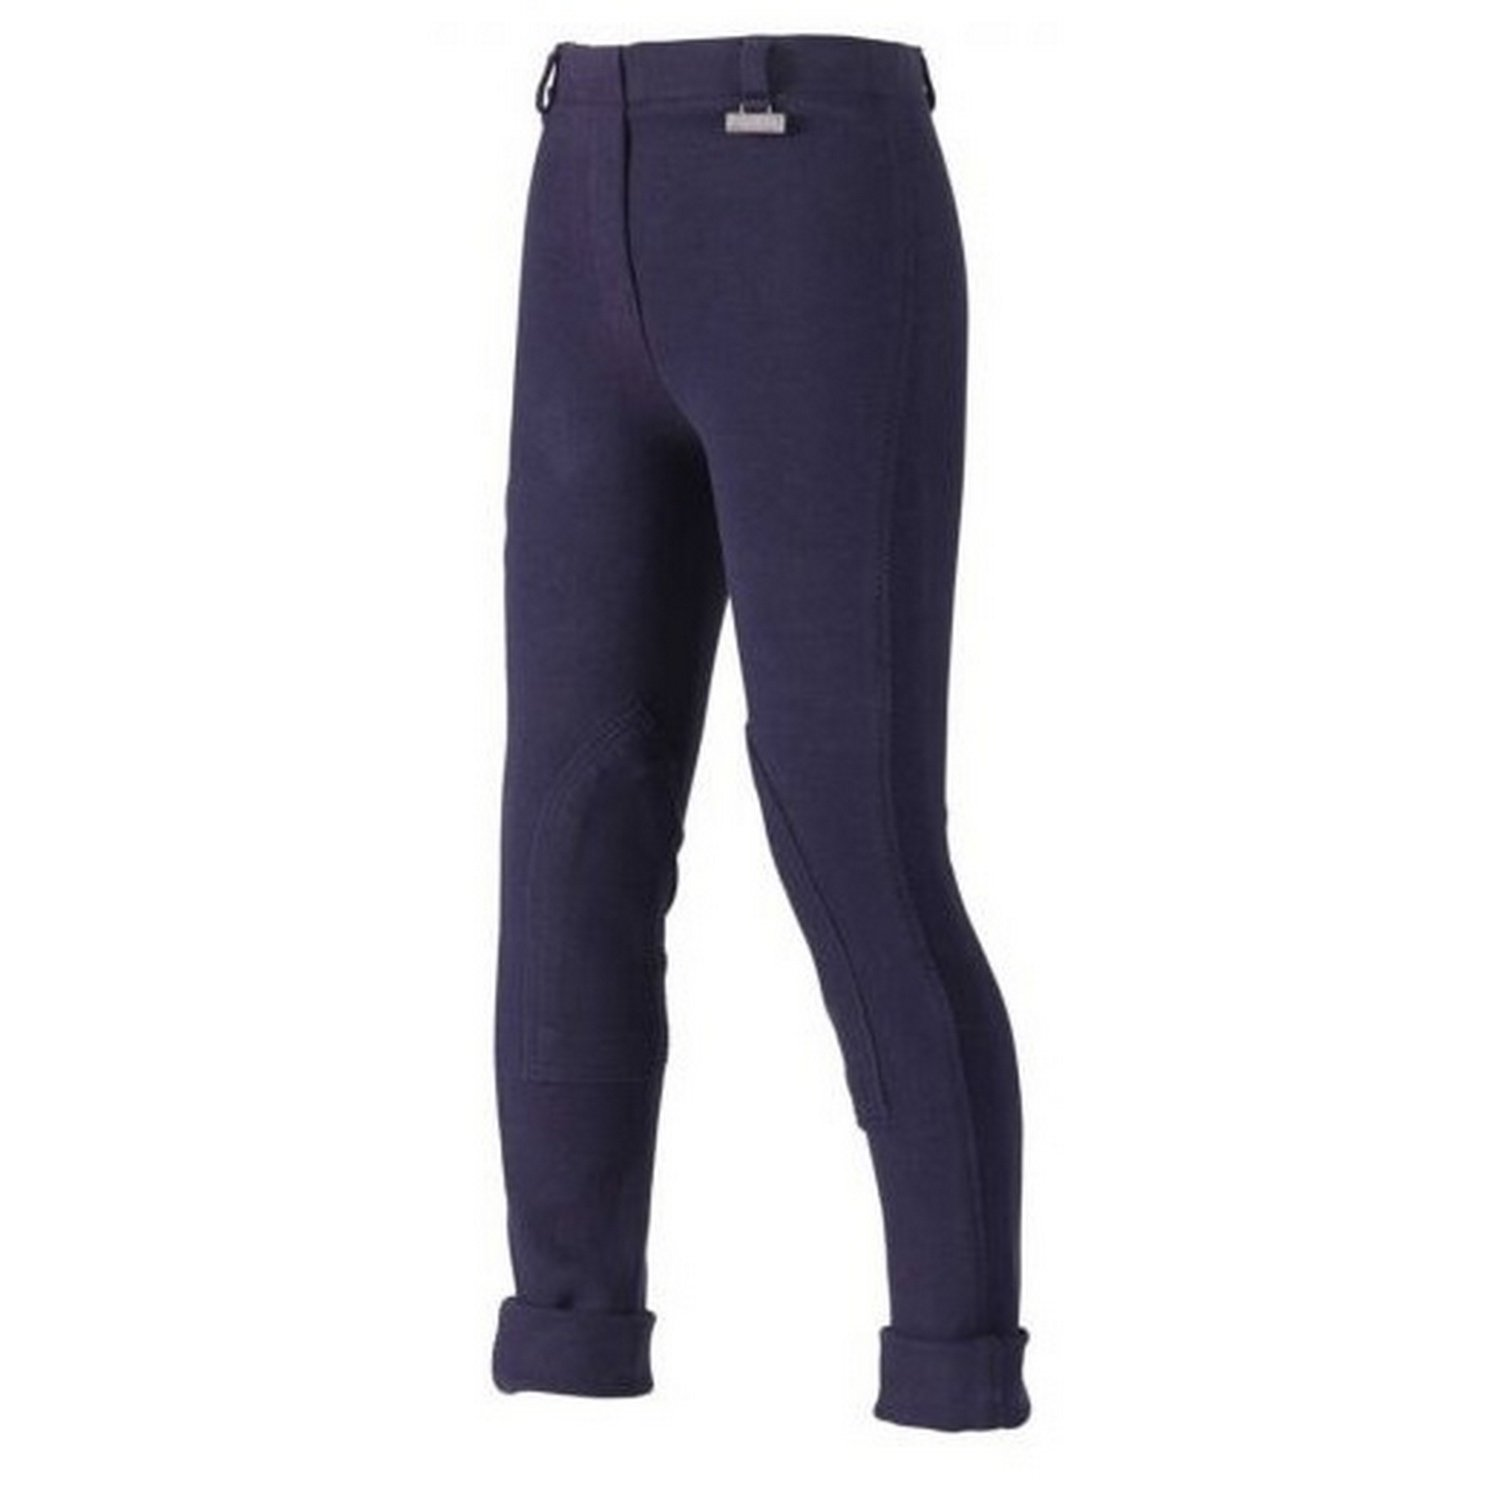 Harry Hall TEX Childrens Chester GVP Jodhpurs